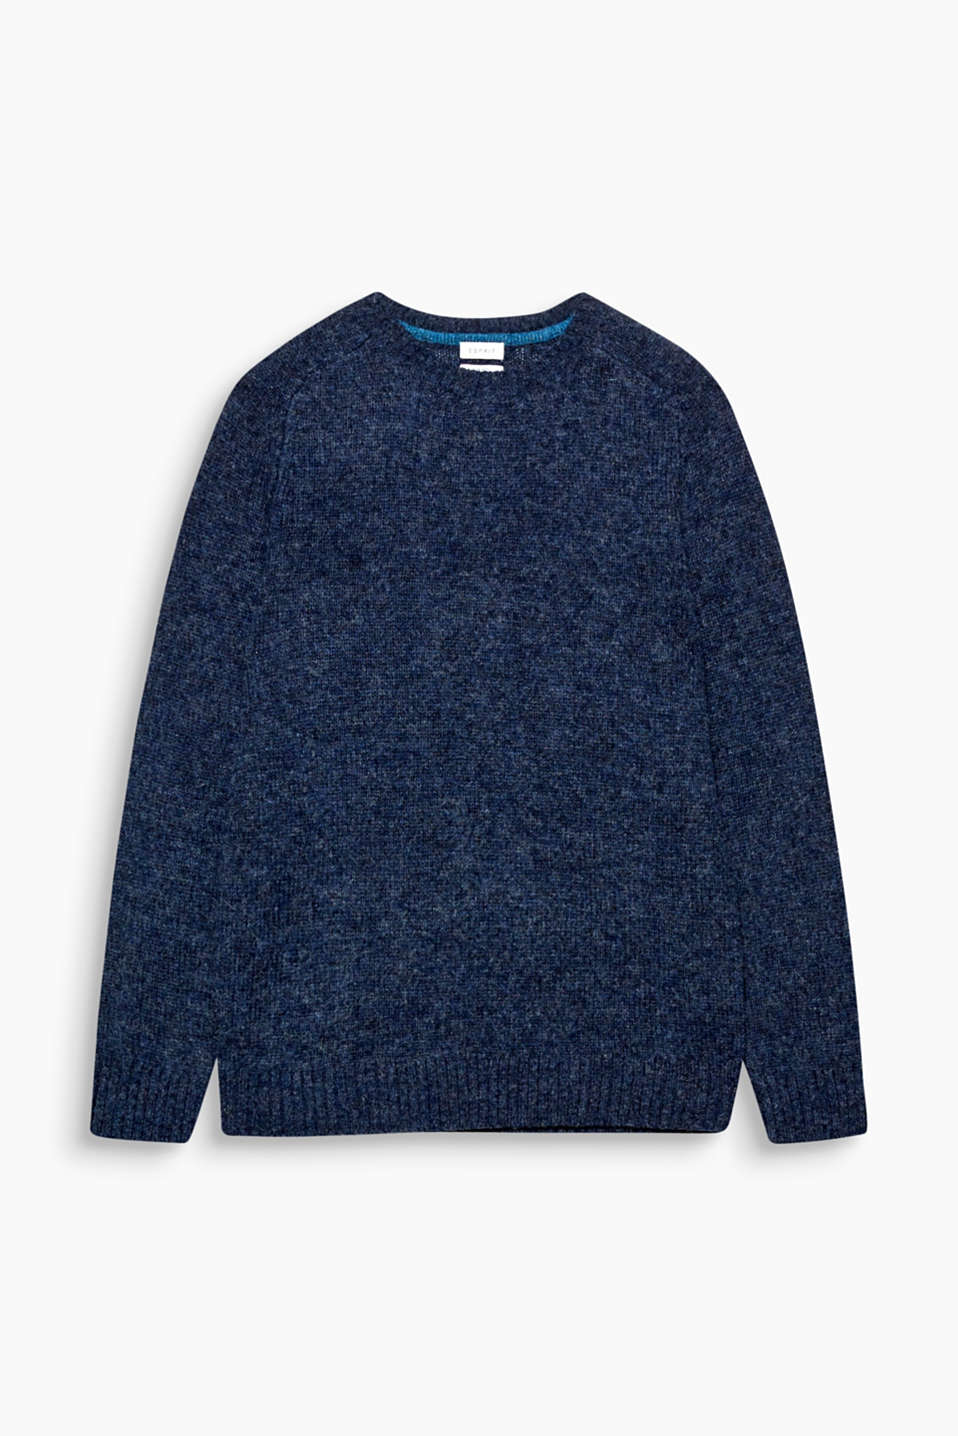 A premium companion for colder seasons! This jumper is made of pure wool.